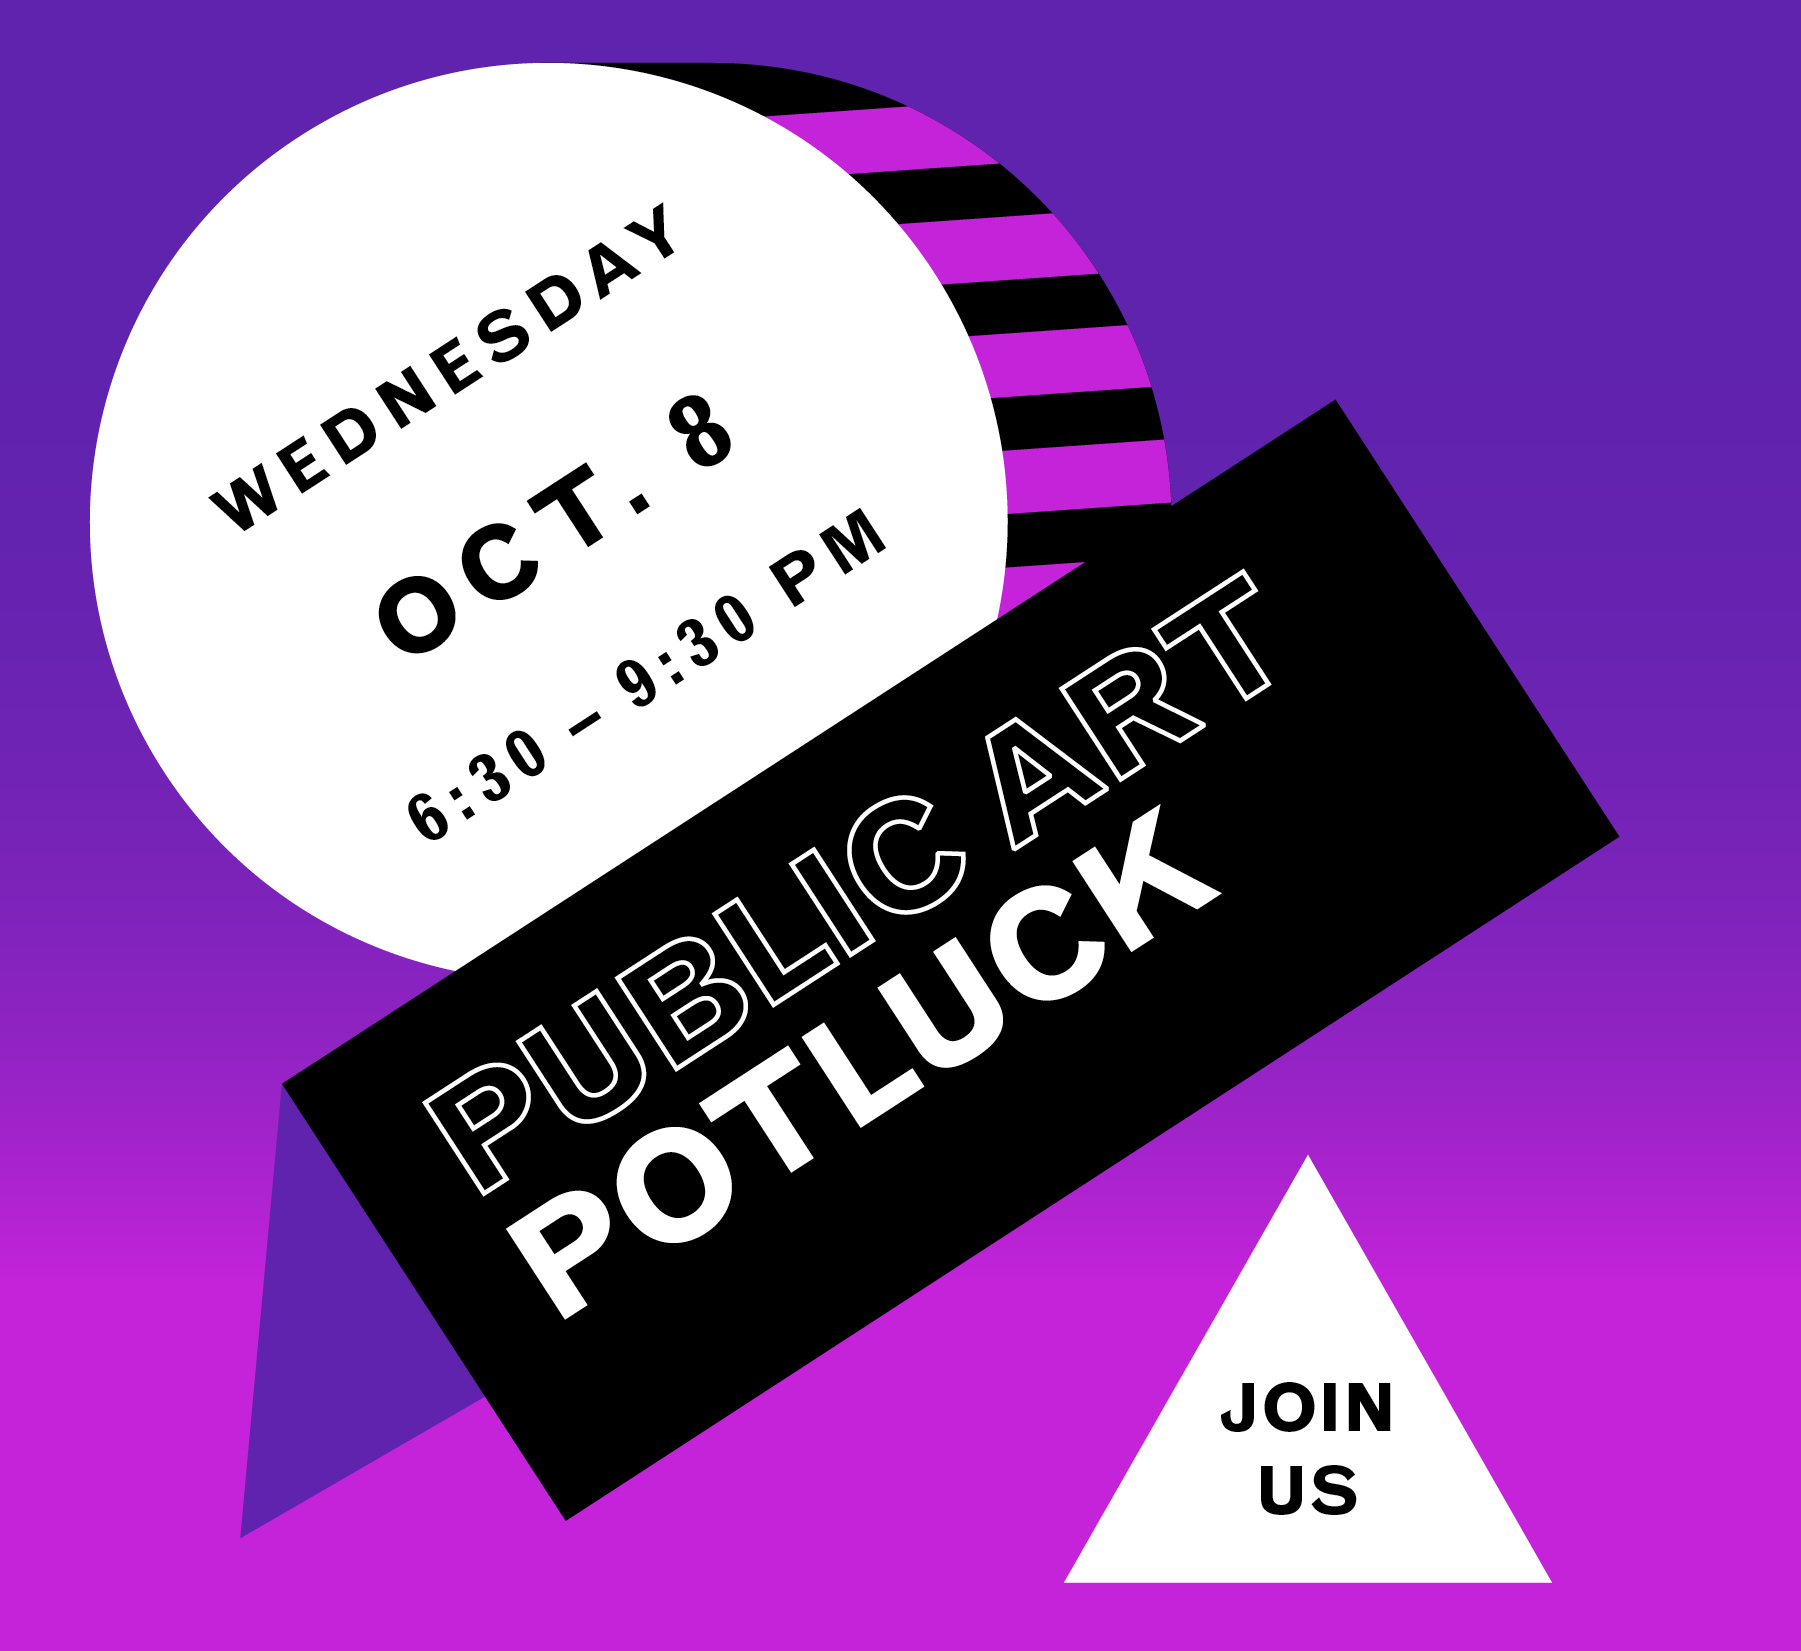 5th Annual Public Art Potluck